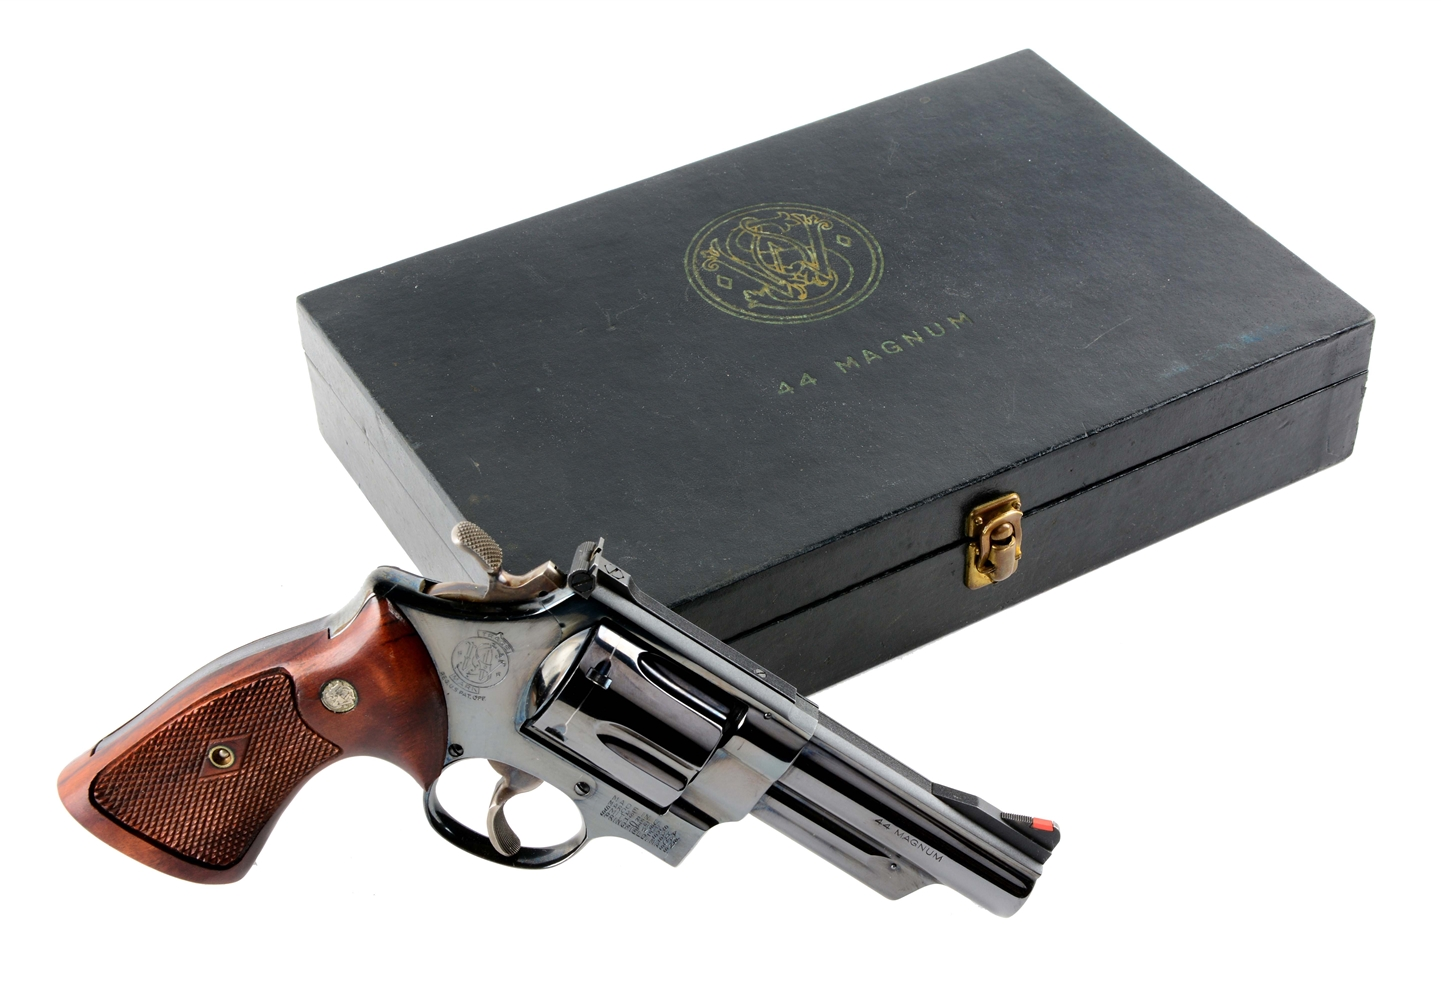 (C) Black Box S&W Model Pre-29 .44 Magnum Double Action Revolver.